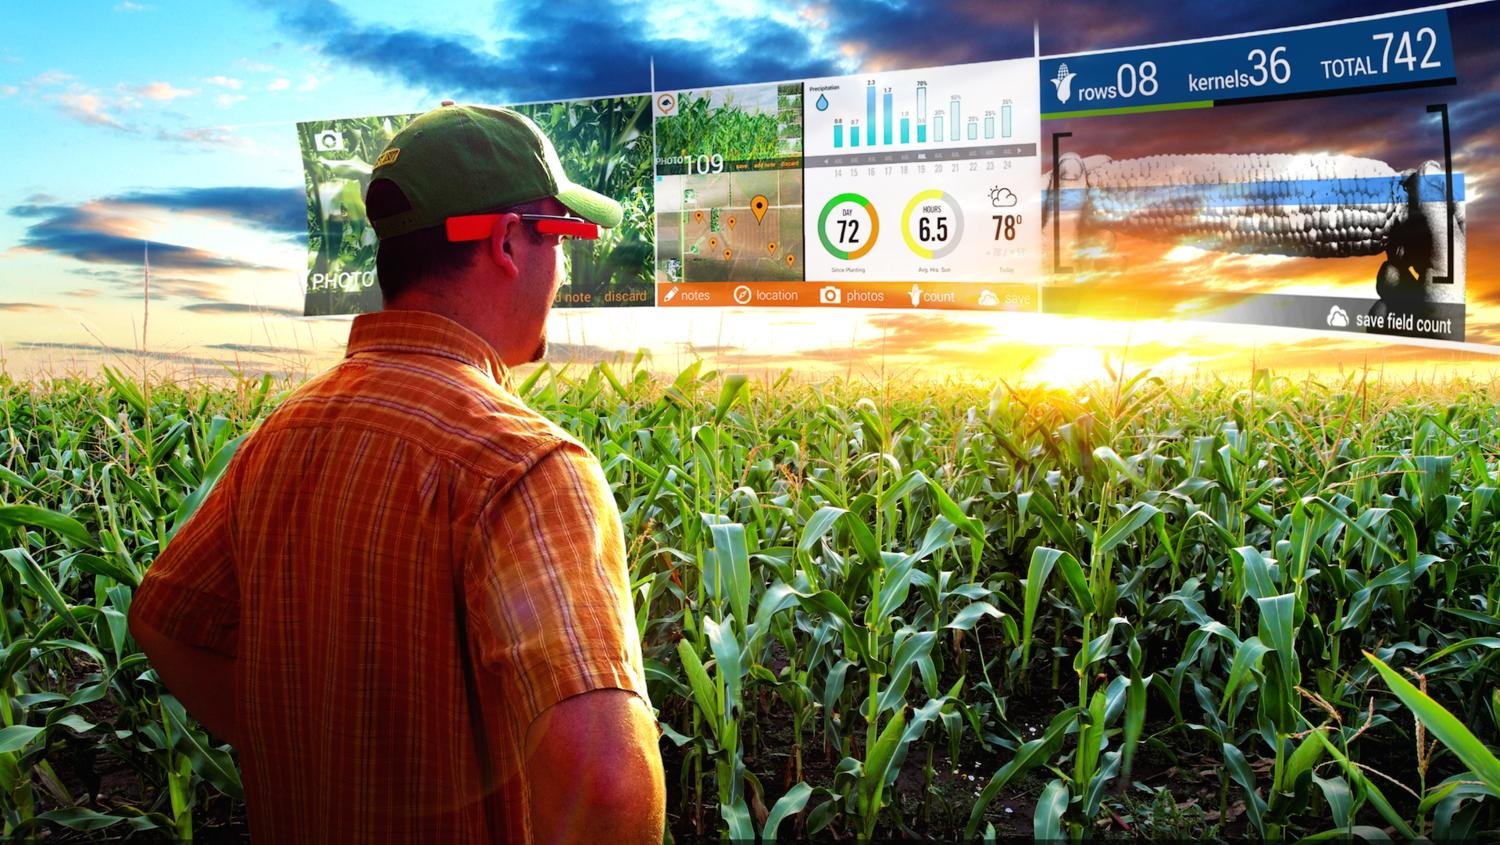 The Future of farming 4.0: drones and artificial intelligence